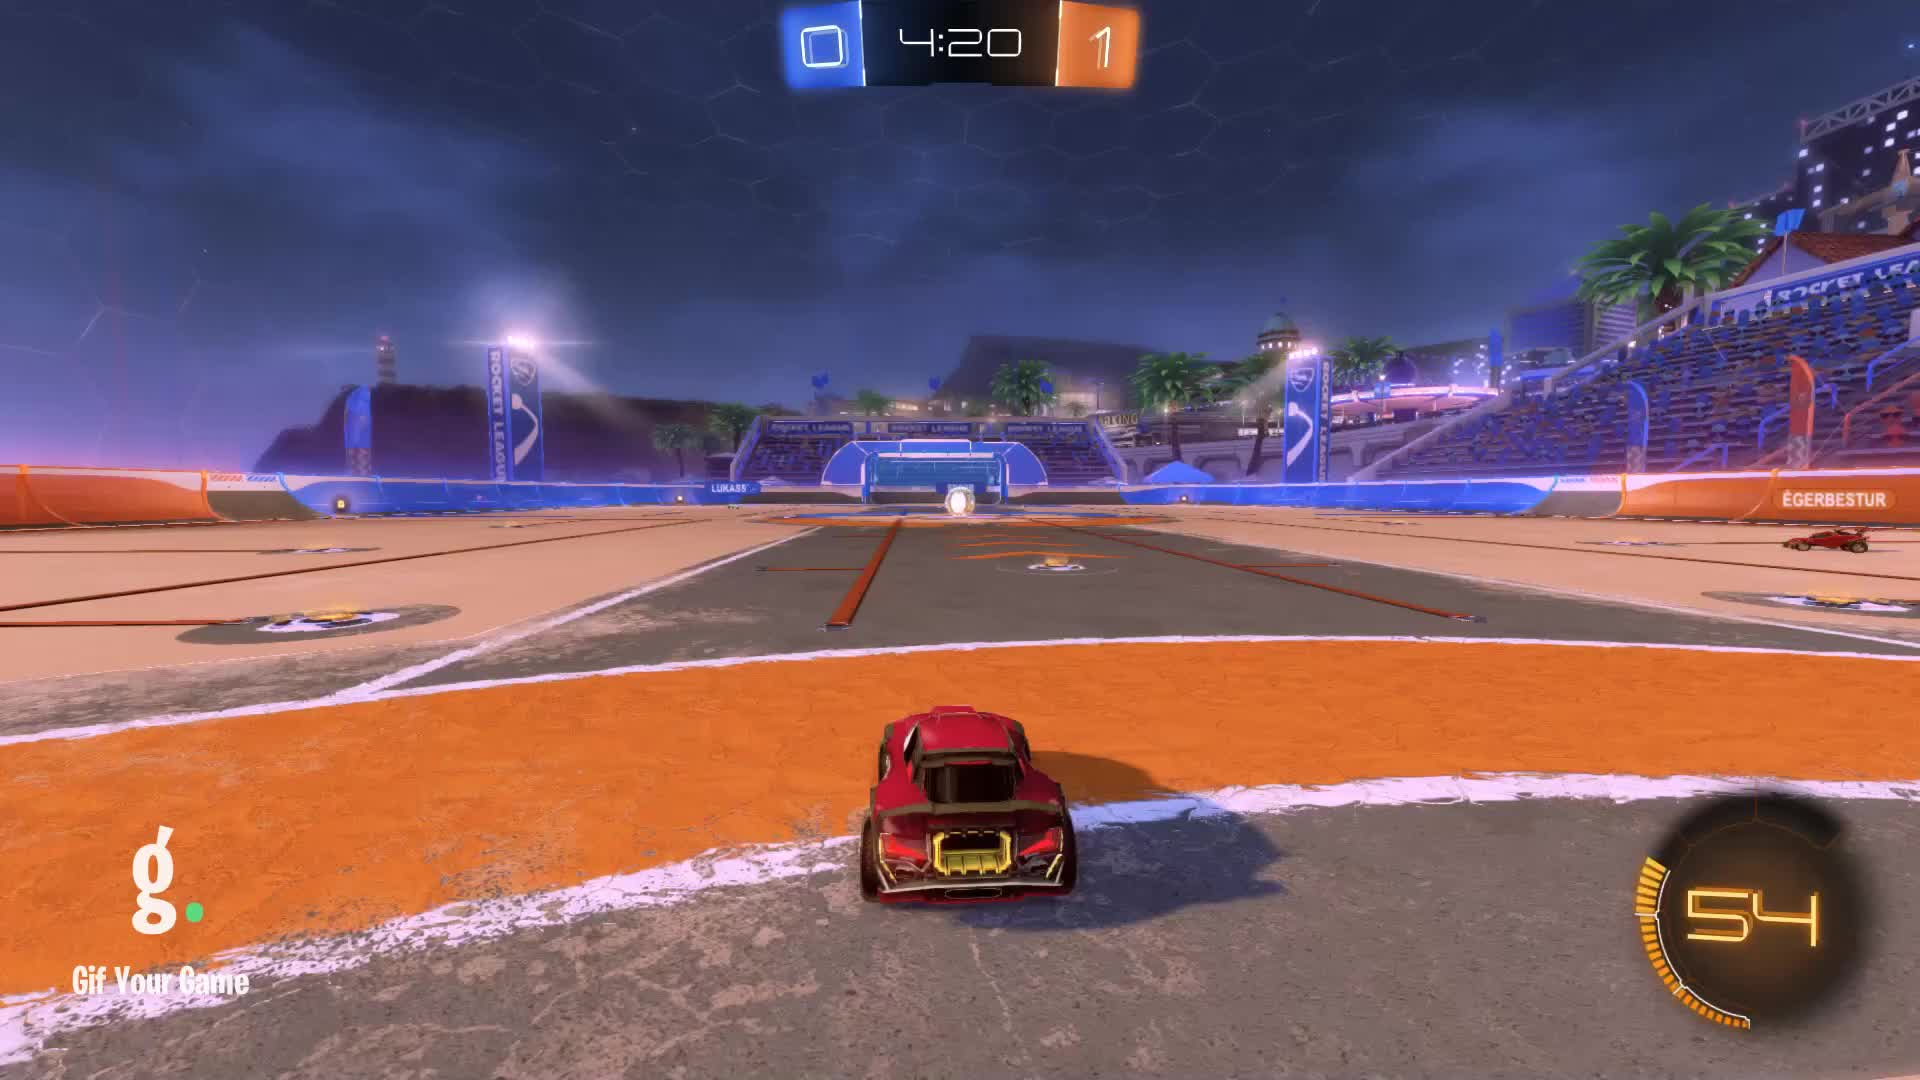 Assist, Atli, Gif Your Game, GifYourGame, Rocket League, RocketLeague, Assist 2: Atli GIFs